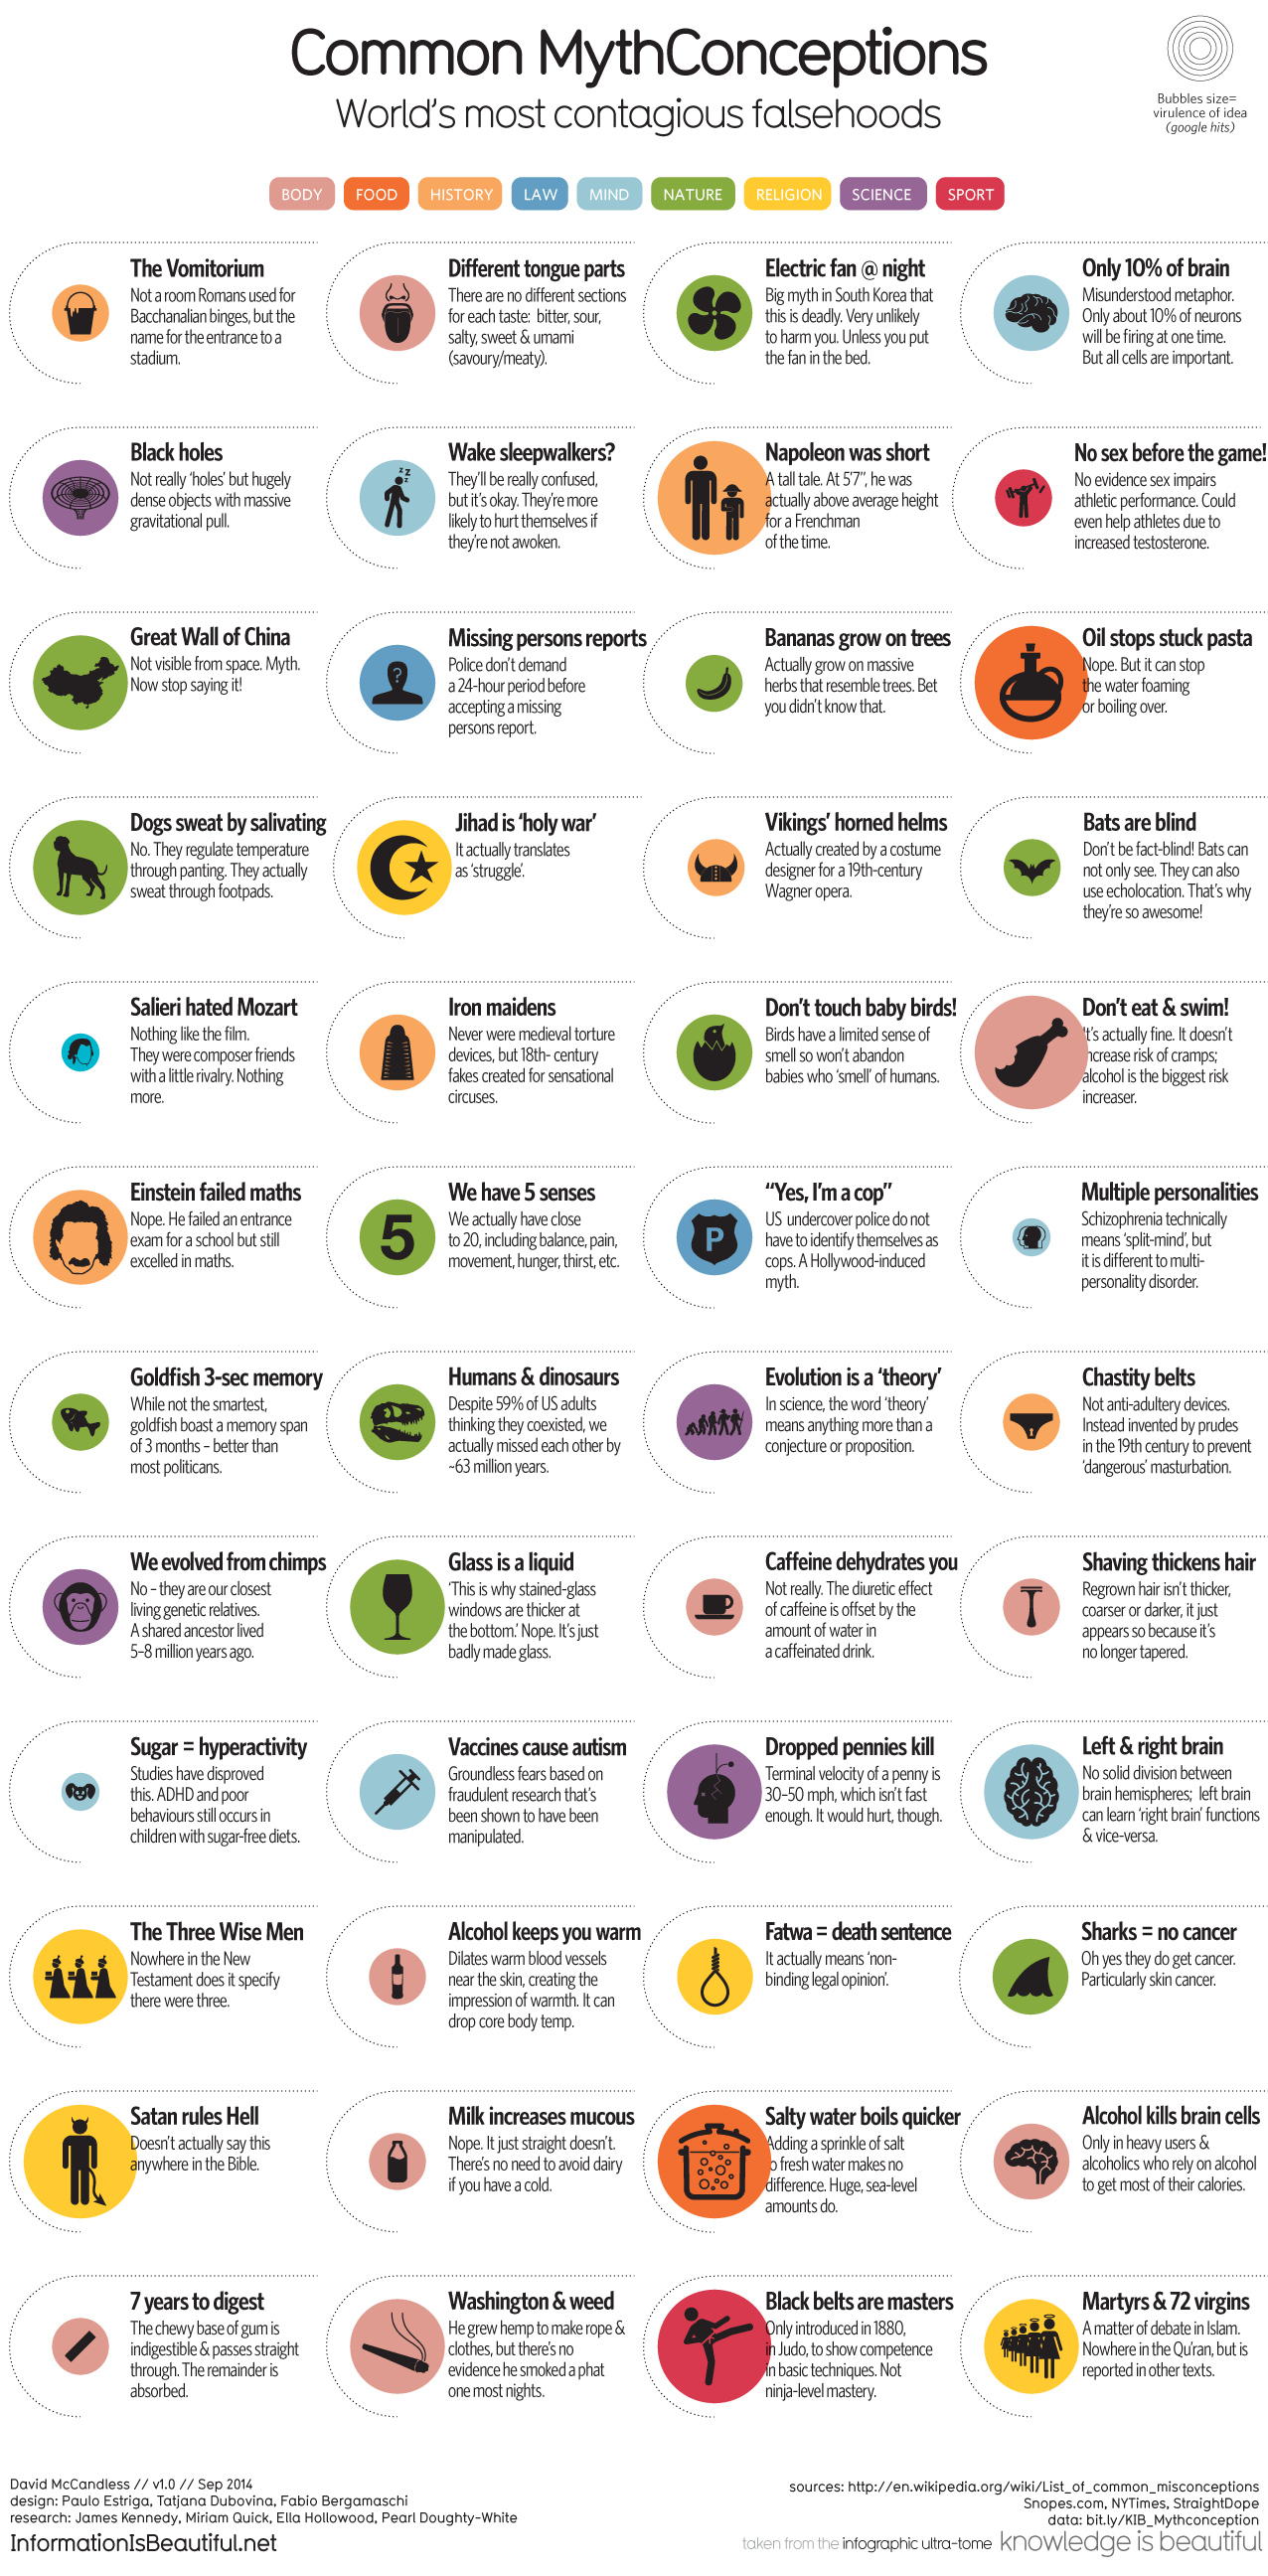 http://infobeautiful3.s3.amazonaws.com/2014/10/1276_common_mythconceptions.png